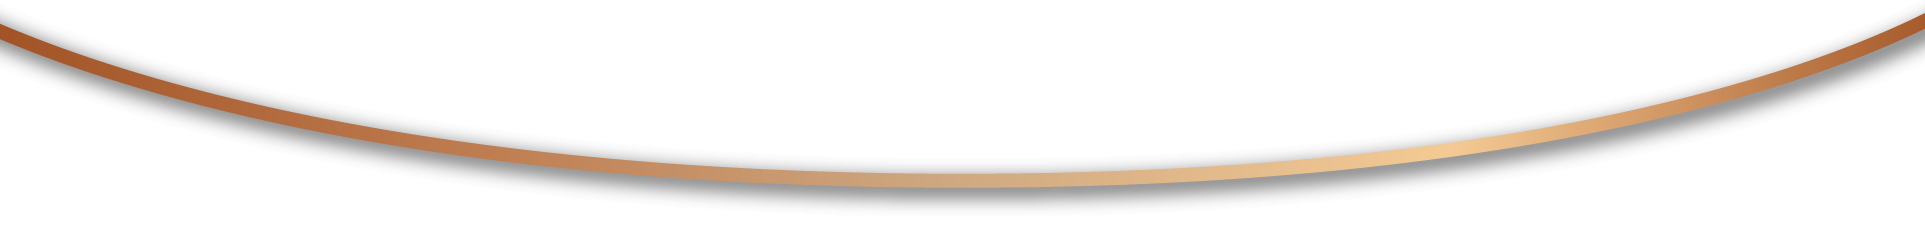 Gold curved line